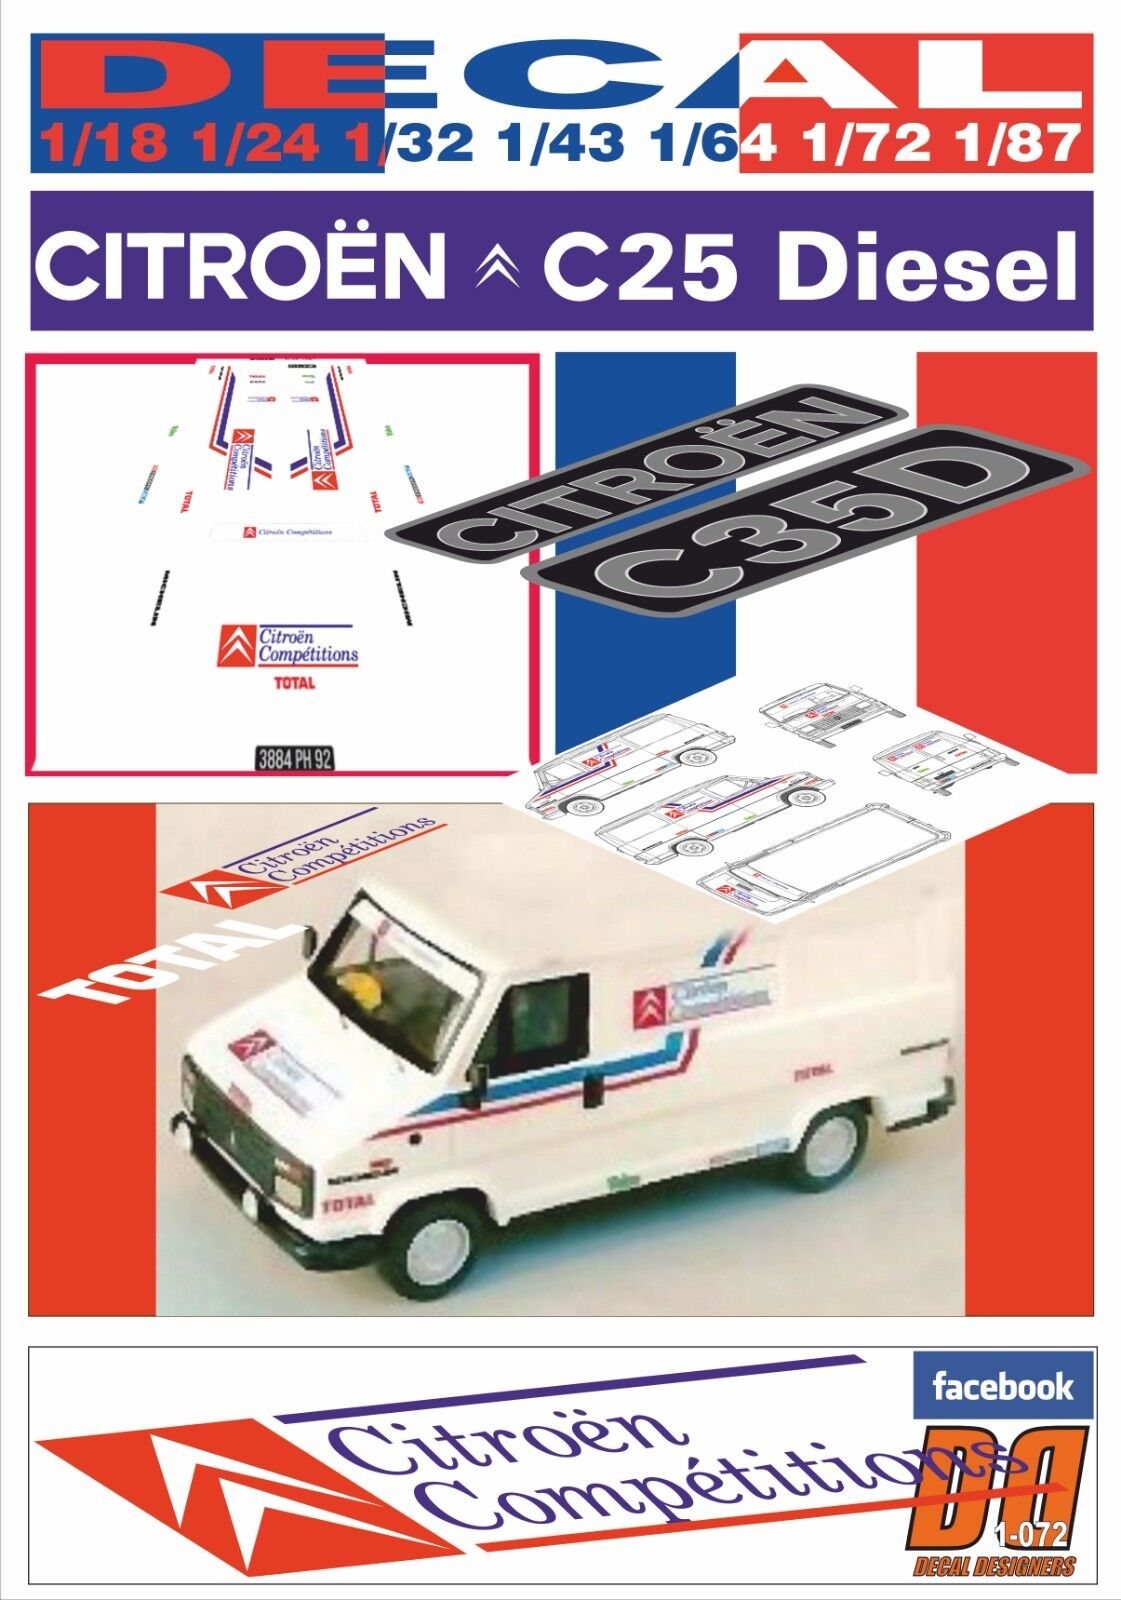 DECAL CITROEN C25D ASSISTANCE CITROEN COMPETITIONS 1988 (08) (08) (08) d4a944